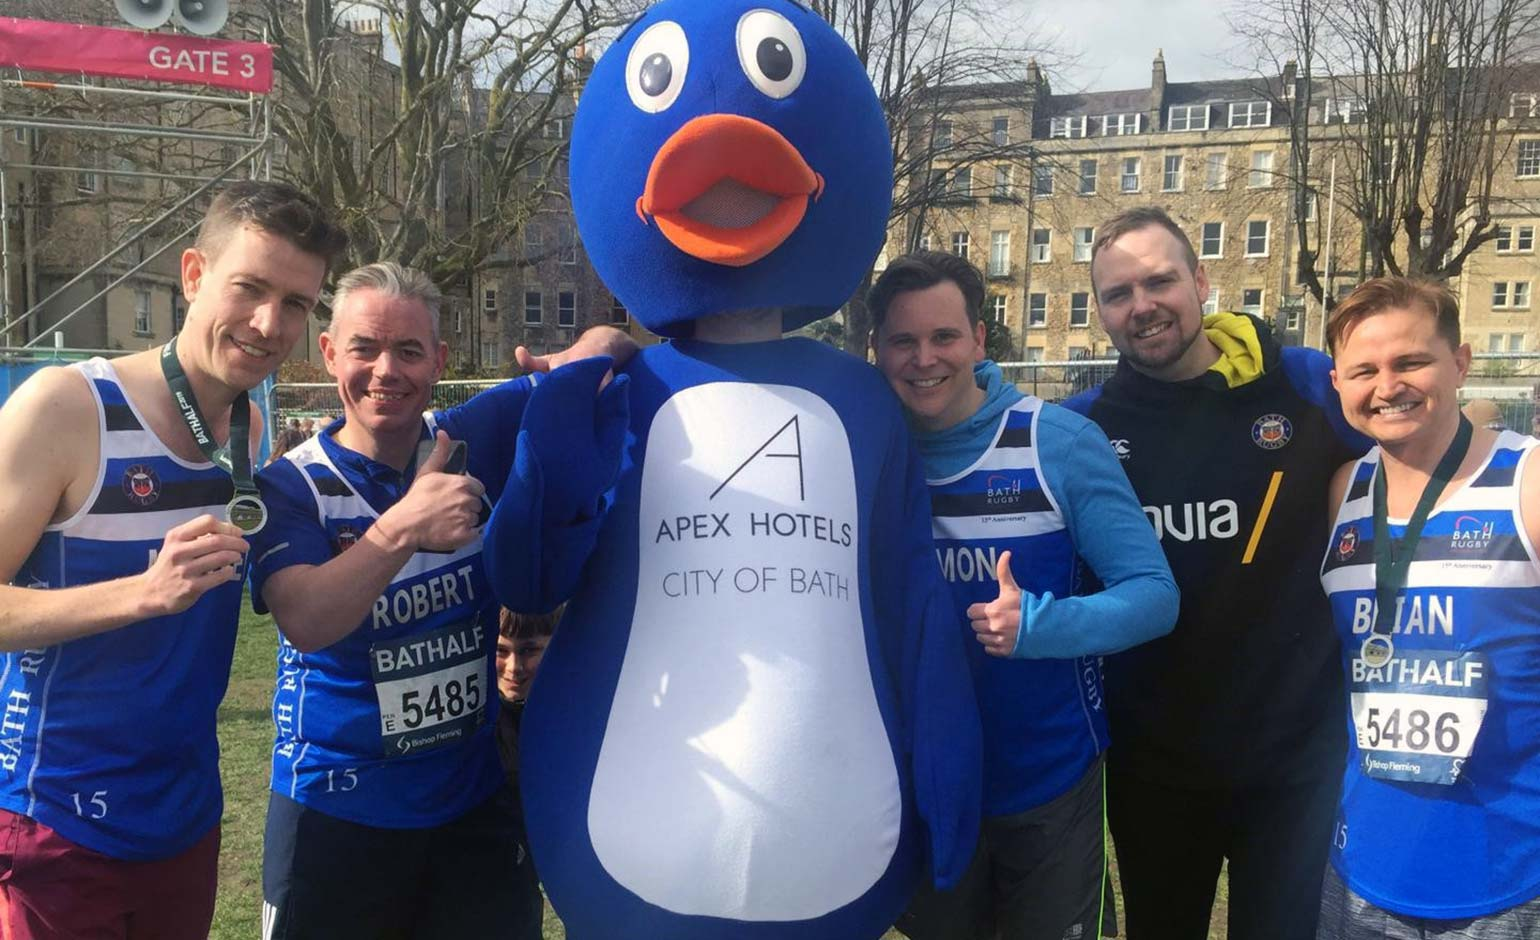 Apex Hotel Bath Half runners raise £2000 for the Bath Rugby Foundation